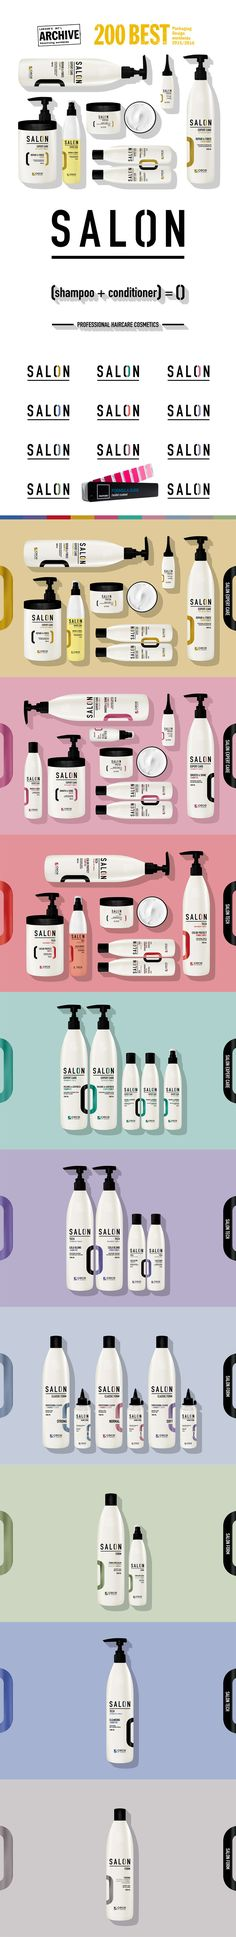 SALON - Professional hair care cosmetics packaging design - branding.